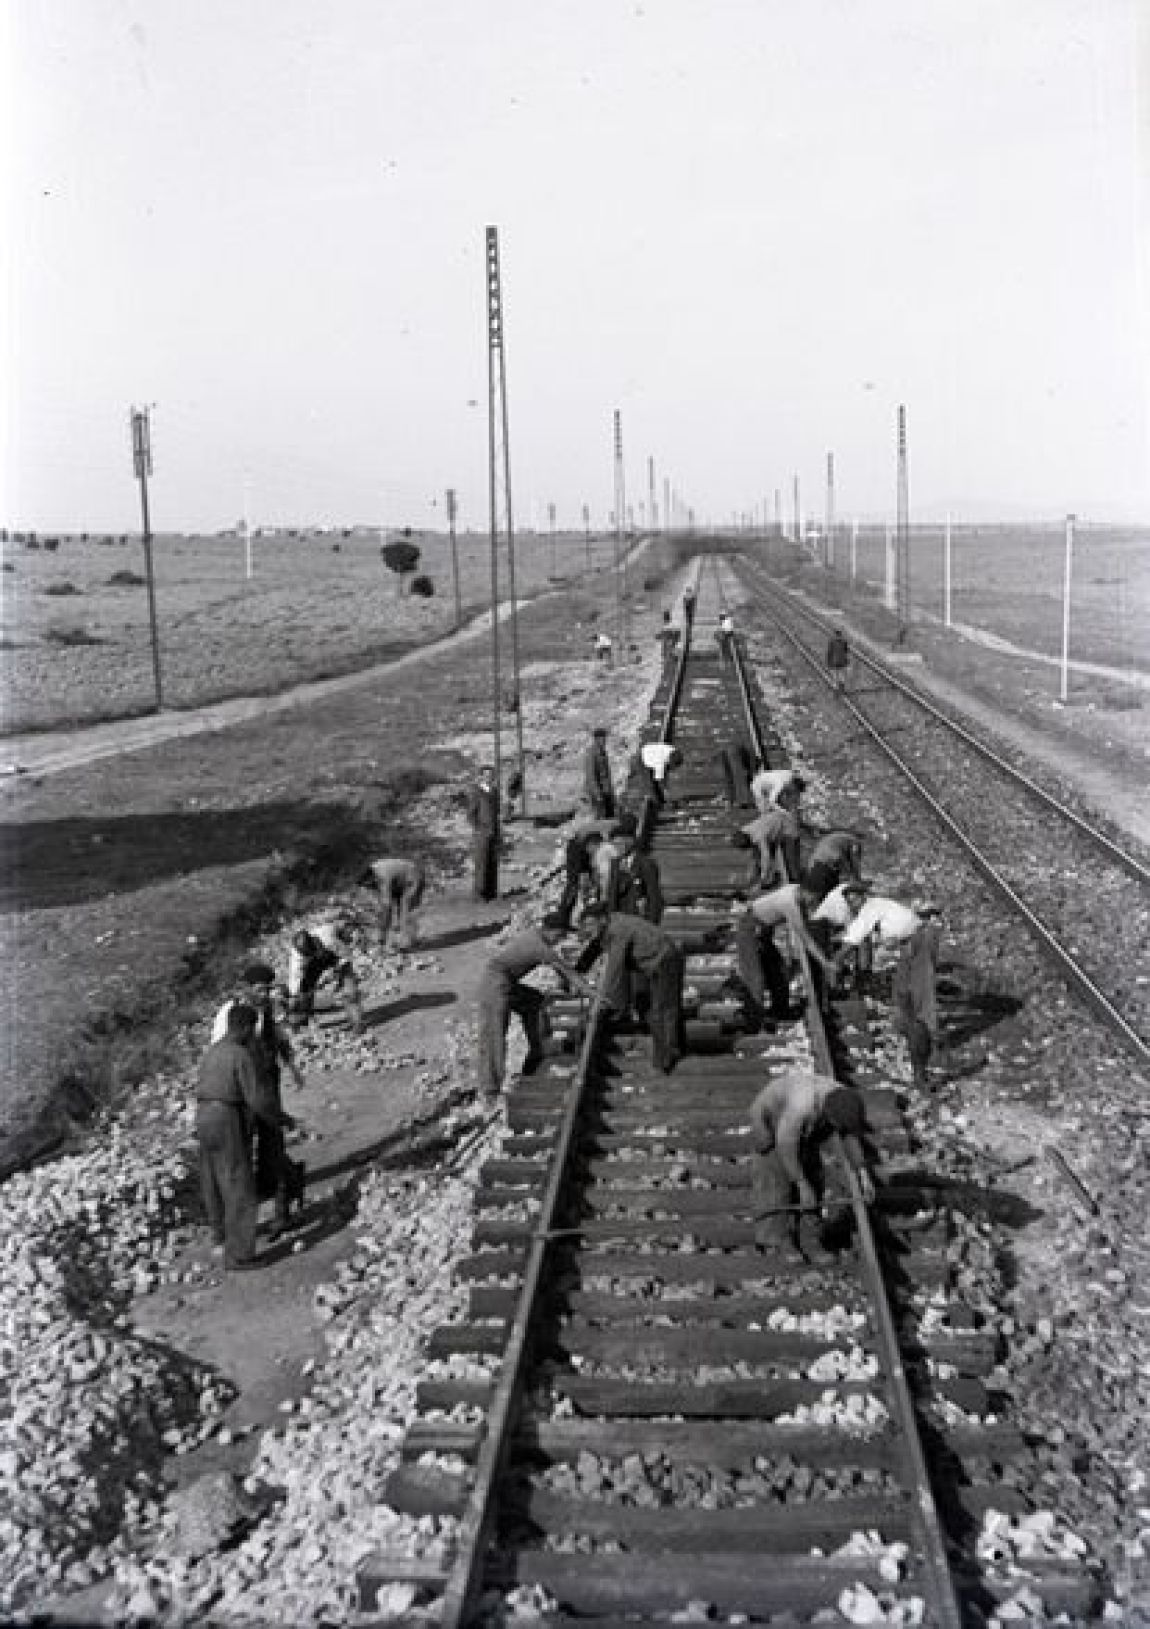 Holdings / Collection: Vicente Garrido Moreno.  A group of workers in the construction works of the Madrid-Irún line in 1944.